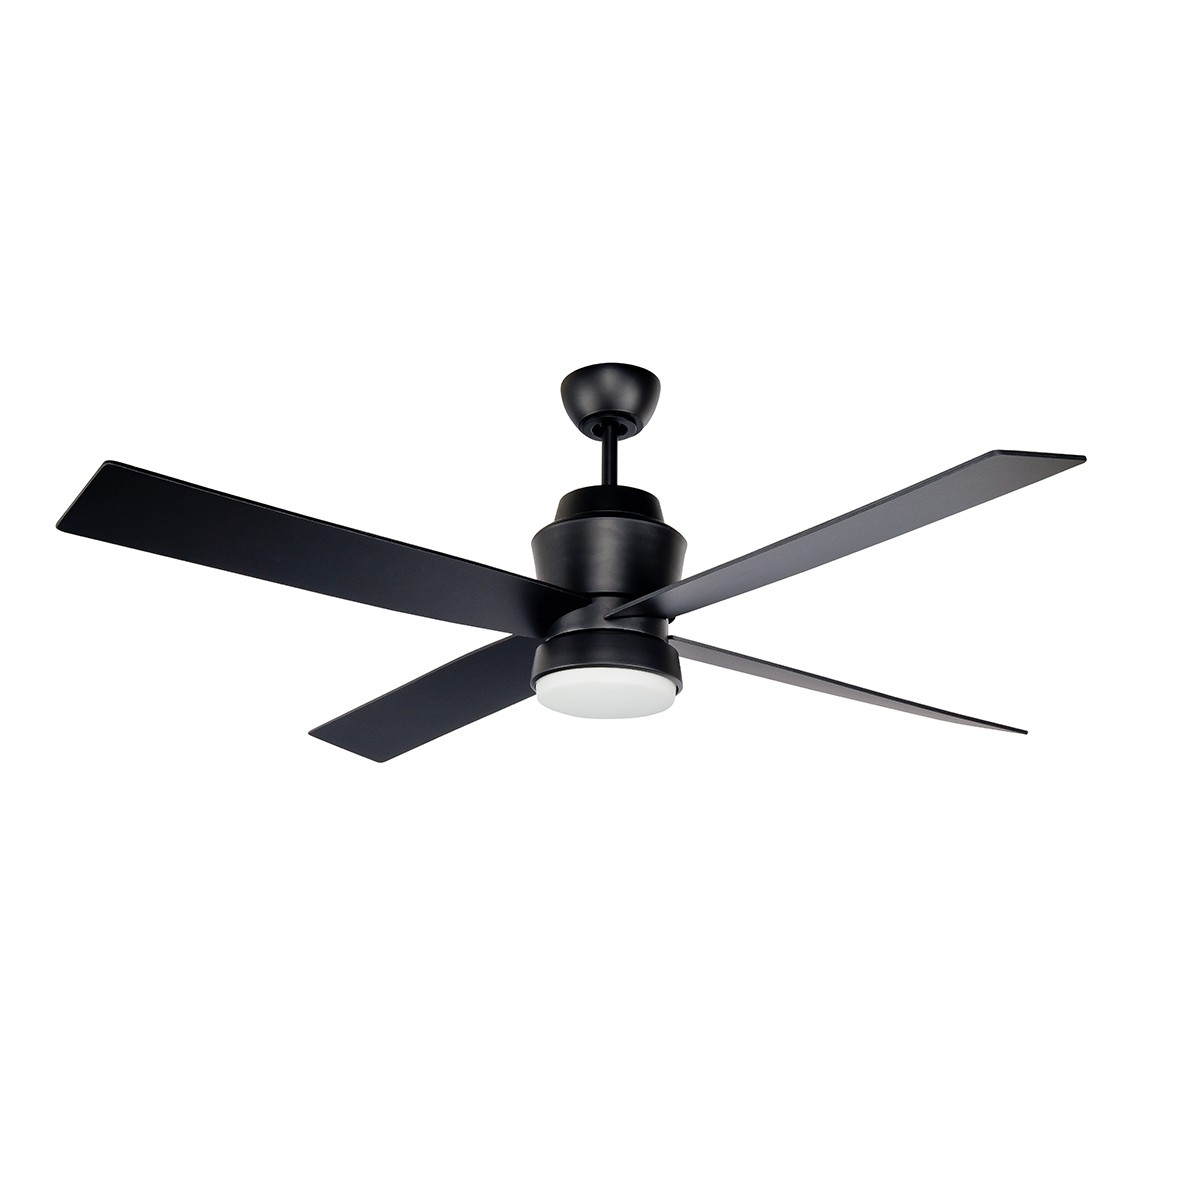 Prologue Outdoor Ceiling Fan :: Stori Modern Inside Newest Modern Outdoor Ceiling Fans With Lights (View 17 of 20)